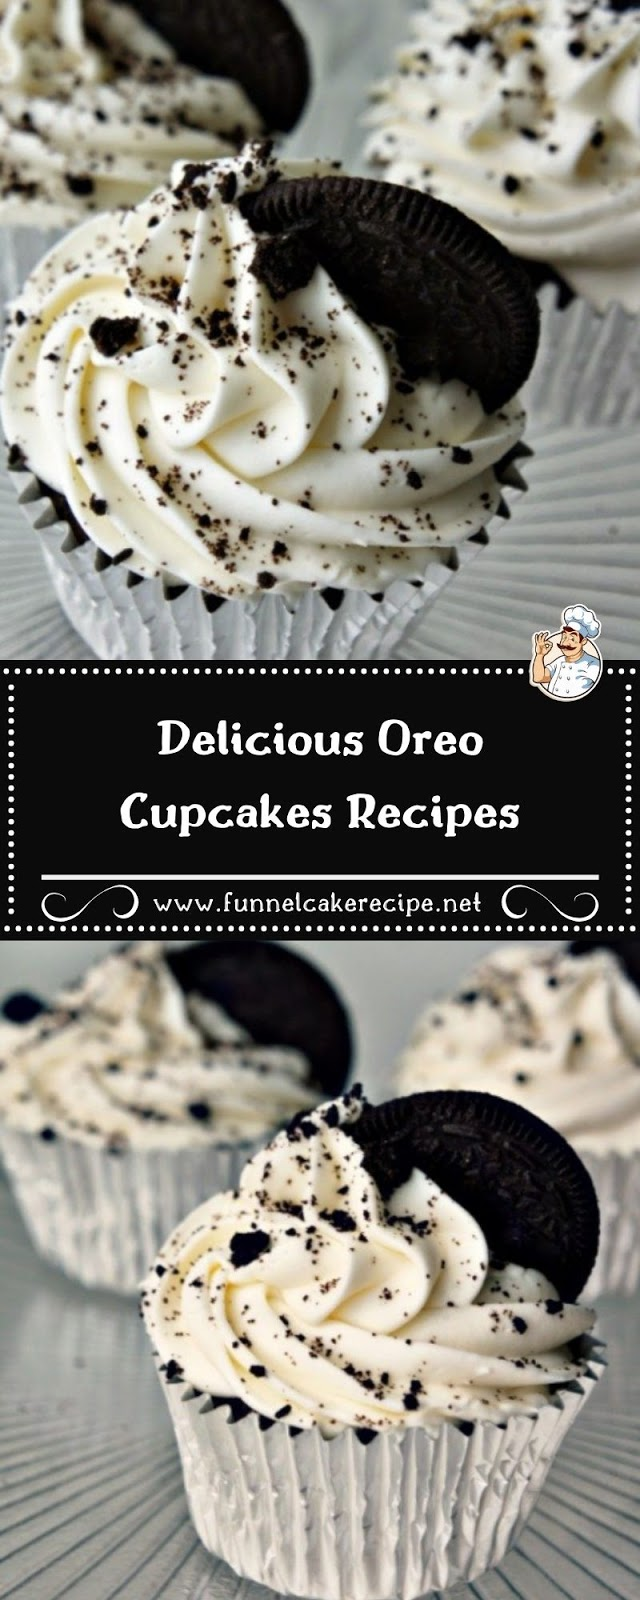 Delicious Oreo Cupcakes Recipes